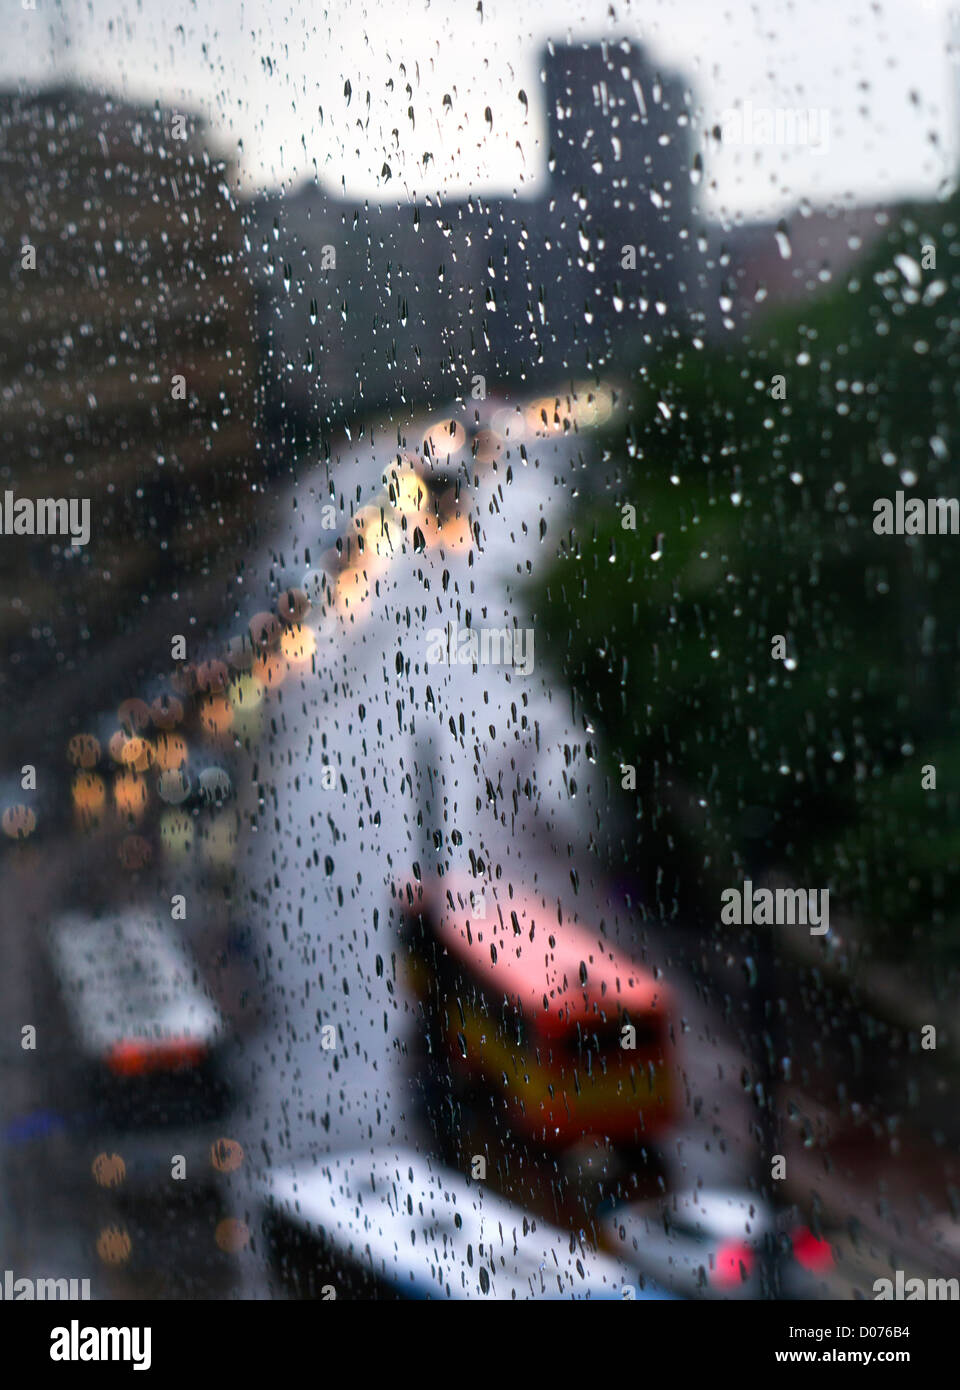 WINDOW RAIN CITY DEPRESSION FEAR OUTDOORS CONCEPT rain drops on high rise apartment block window with traffic flowing - Stock Image